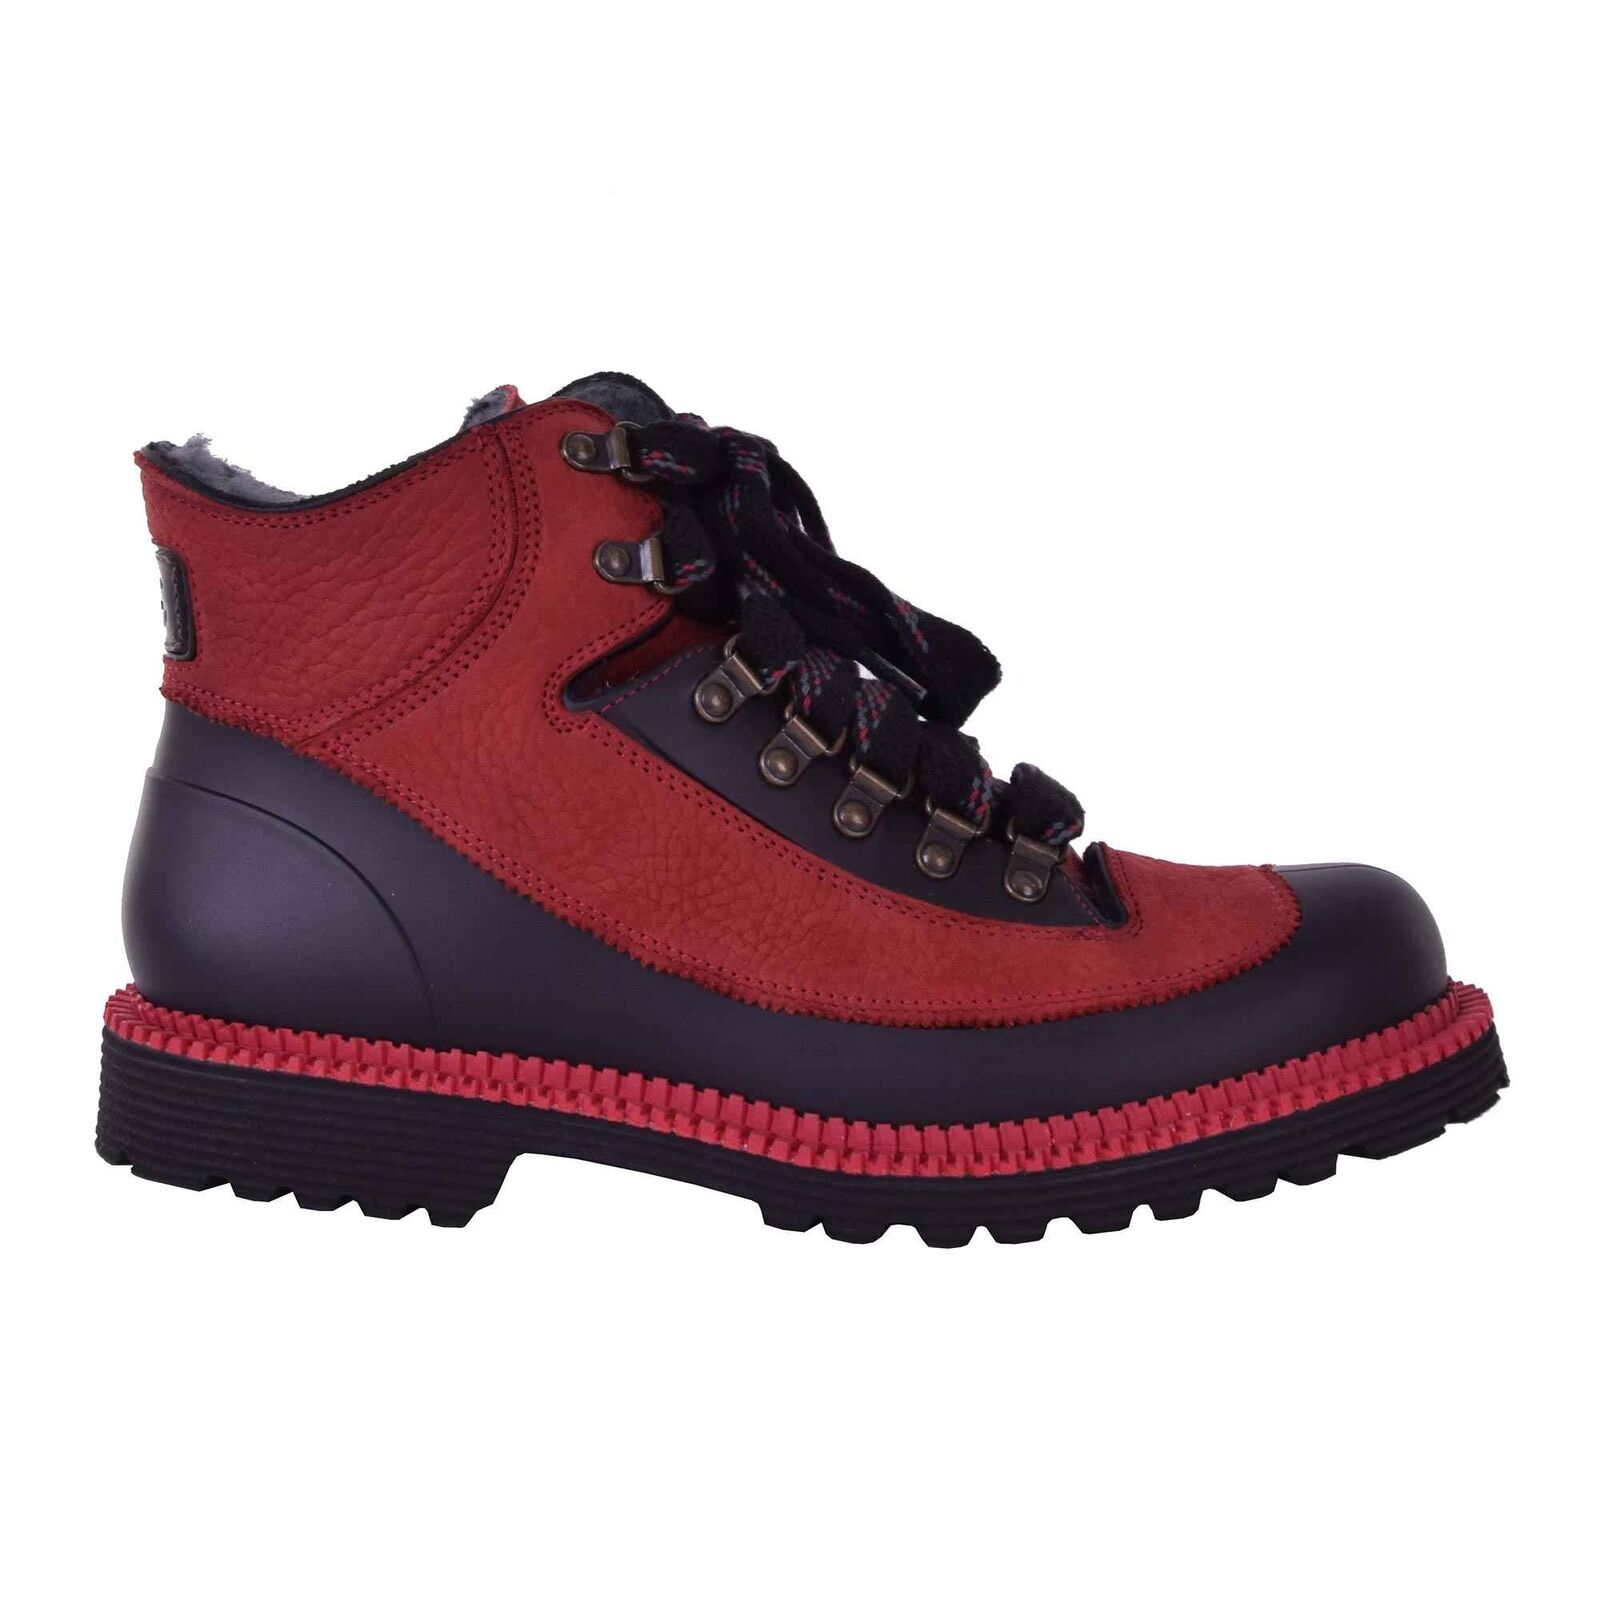 DOLCE & GABBANA Lined Winter Ankle Boots Shoes Red Black 05968